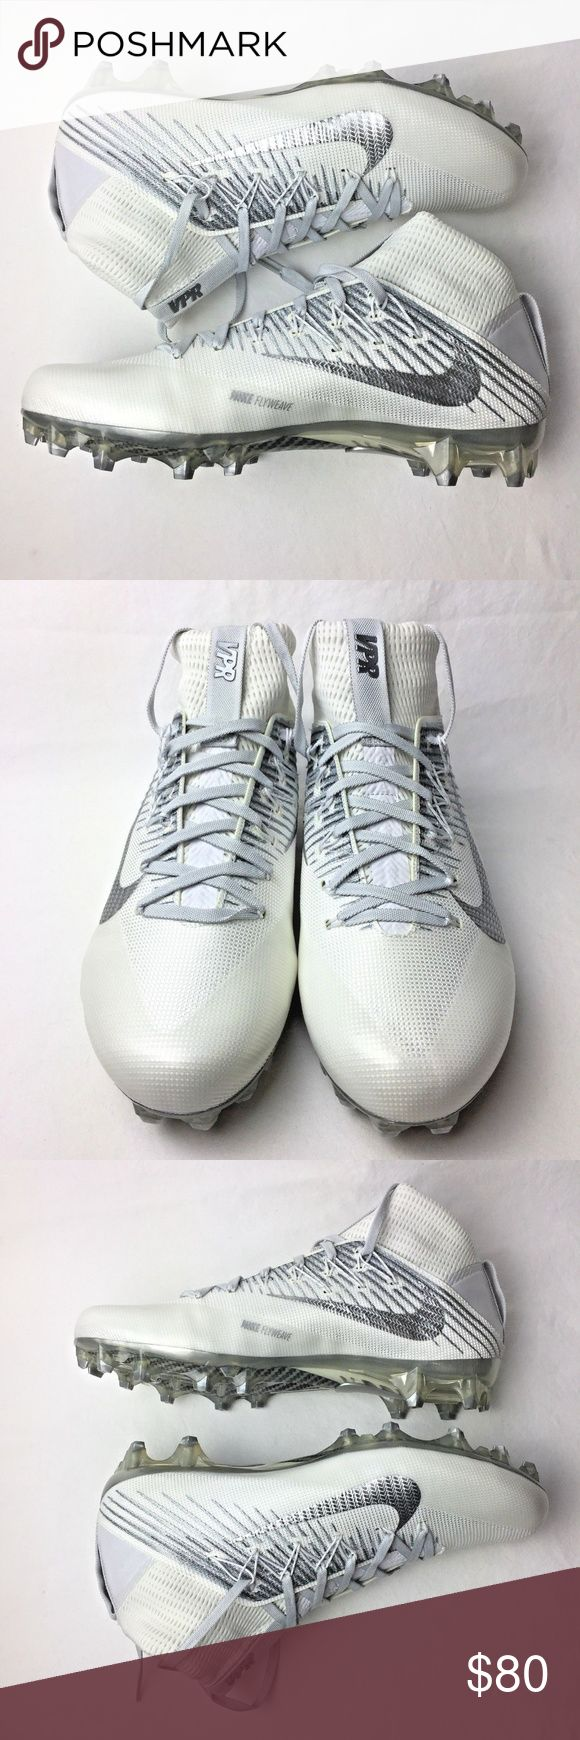 Nike Vapor Mens 10 Untouchable 2 VPR Football Shoe Nike Vapor Mens 10 Untouchable 2 VPR Football Cleats White Silver 824470100  NEW WITHOUT BOX  • Durable woven construction provides an adaptive and comfortable fit • Flywire cables wrap the midfoot to lock your foot in place • One-piece collar wraps your ankle for a glove-like fit • Carbon fiber plate provides lightweight stability without sacrificing flexibility • Updated cleat geometry is designed for a more responsive pivot and release…